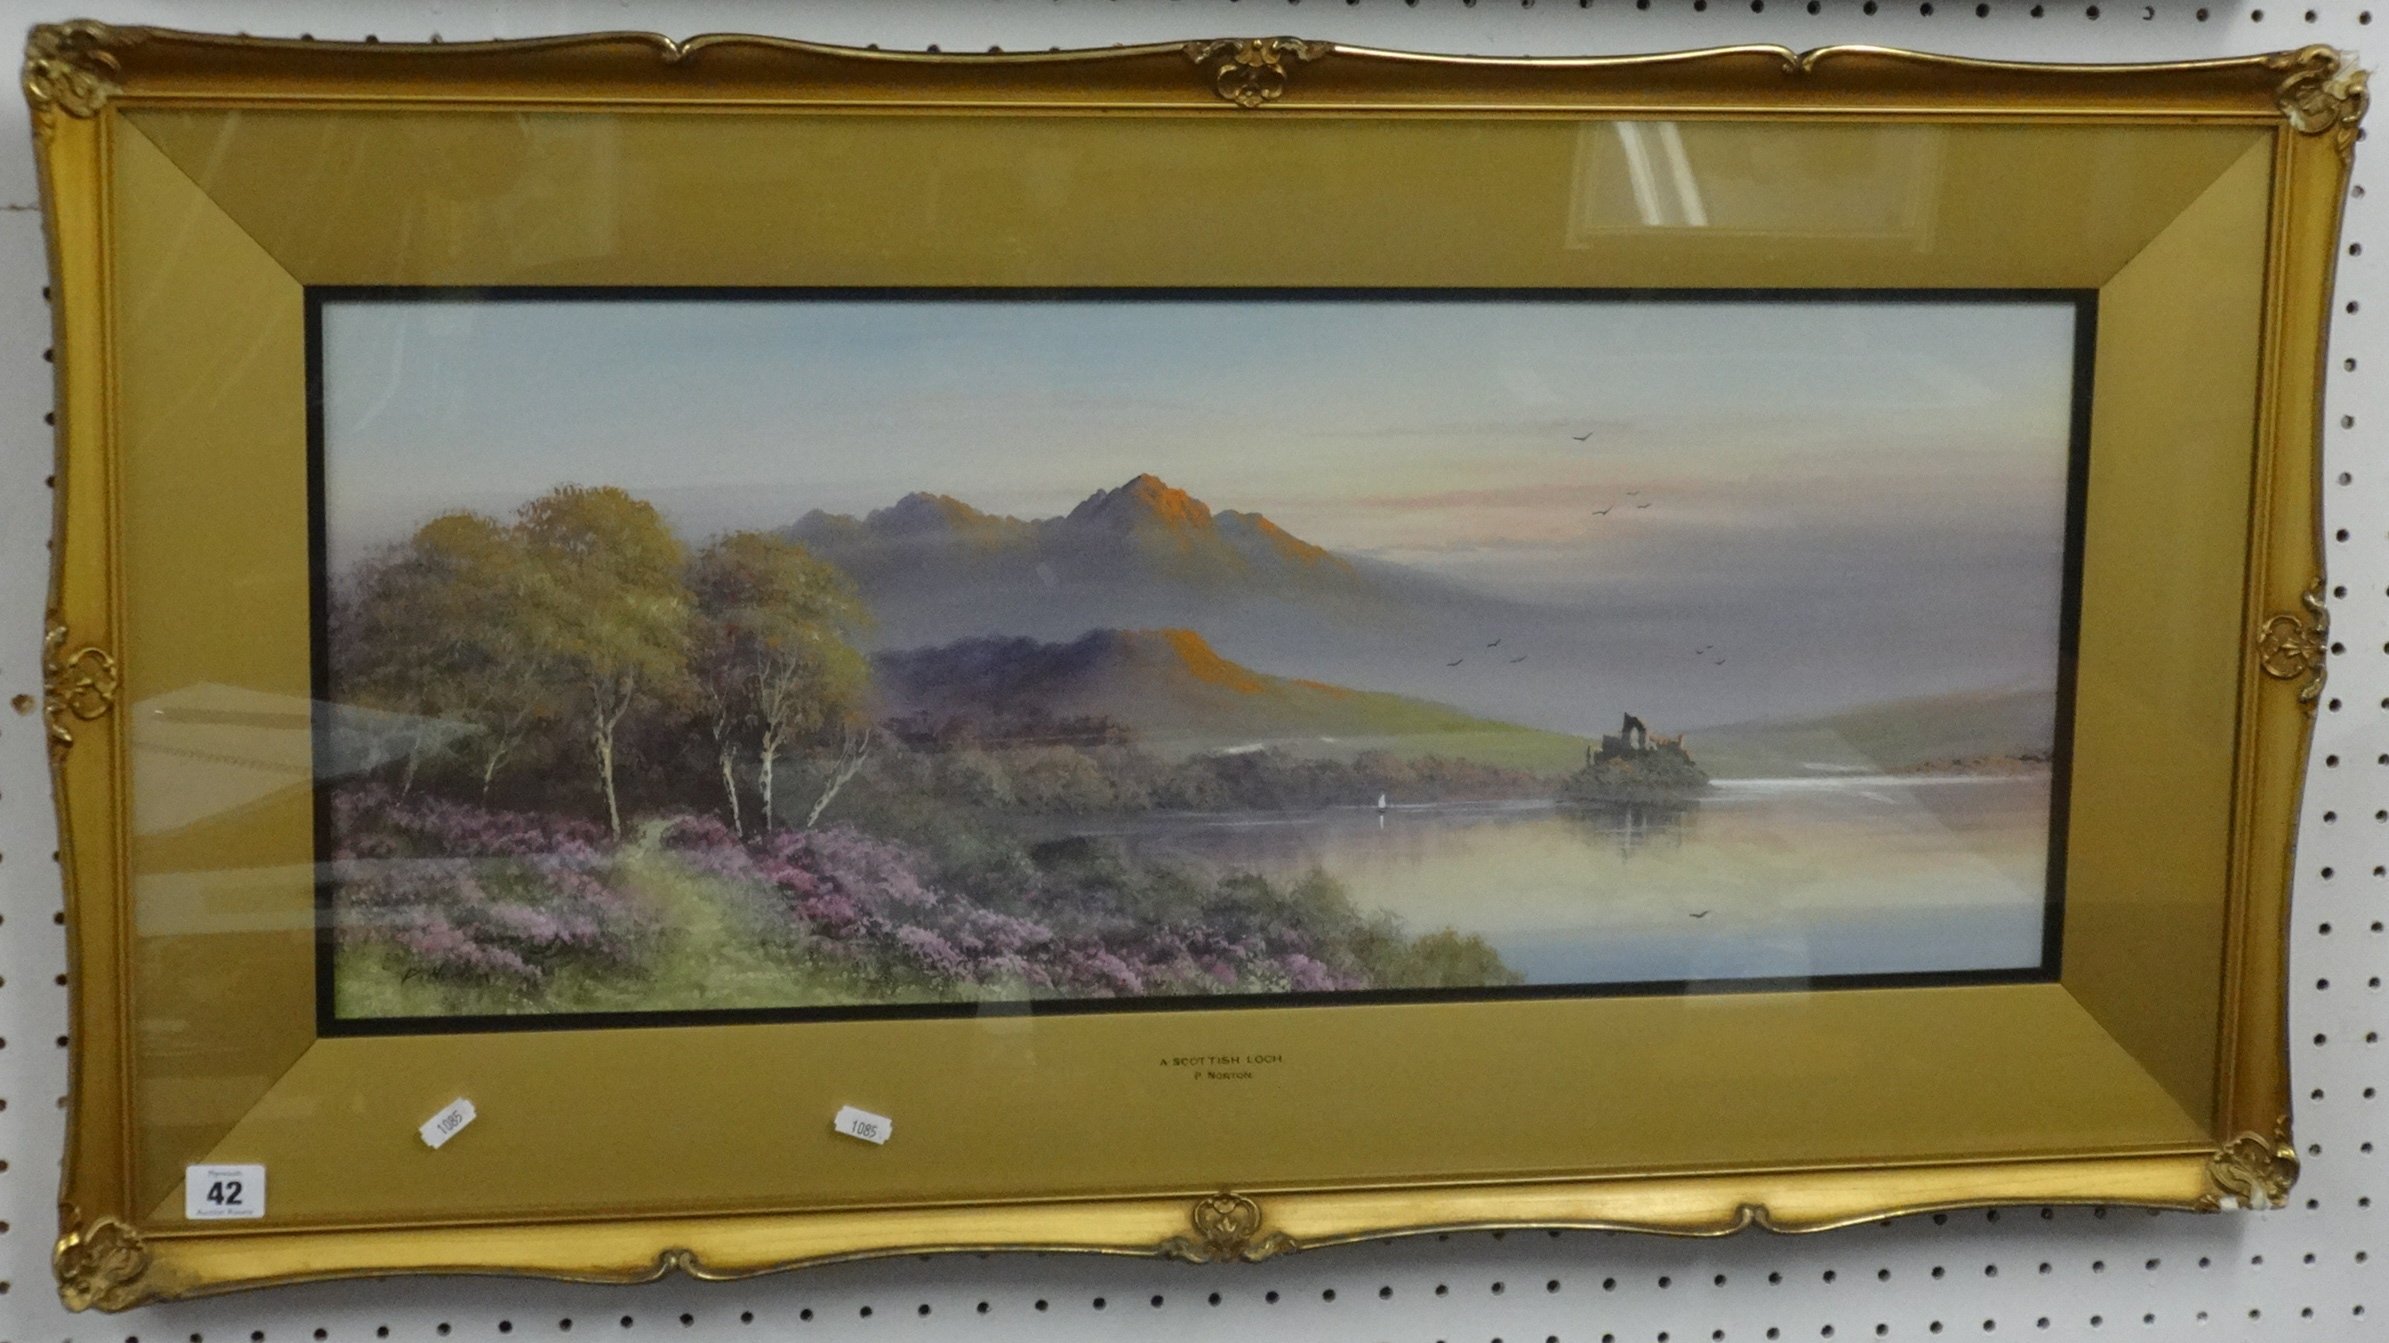 Lot 42 - P. Norton, early 20th century, a signed watercolour 'A Scottish Loch', titled to the mount, 30cm x